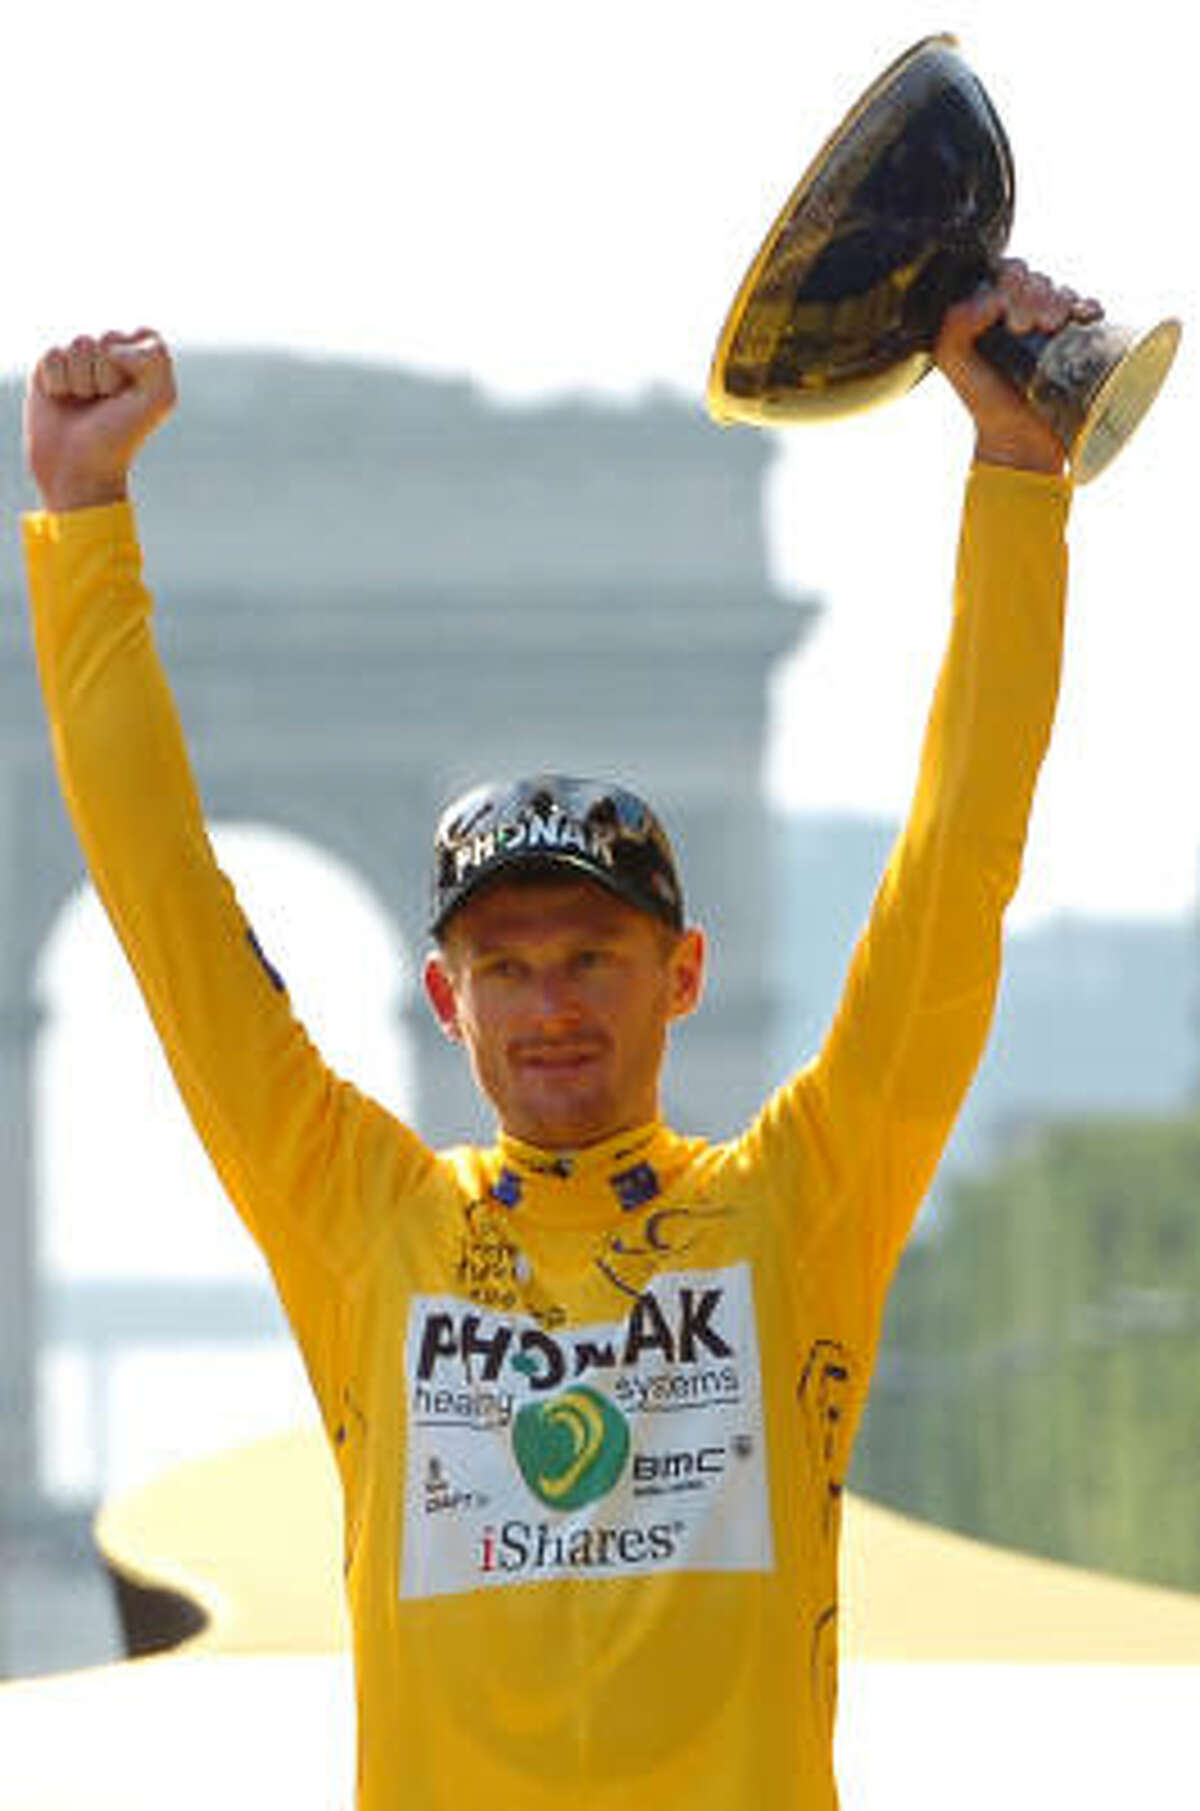 FILE - 2006 Tour de France winner Floyd Landis of the US, holds up his trophy after the final stage of the 93rd Tour de France cycling race between Antony, south of Paris, and Paris, in this July 23, 2006 file photo. France's anti-doping chief said on Monday Feb. 15, 2010 that a French judge has issued a national arrest warrant for U.S. cyclist Floyd Landis in connection with a case of data hacking at a doping laboratory.